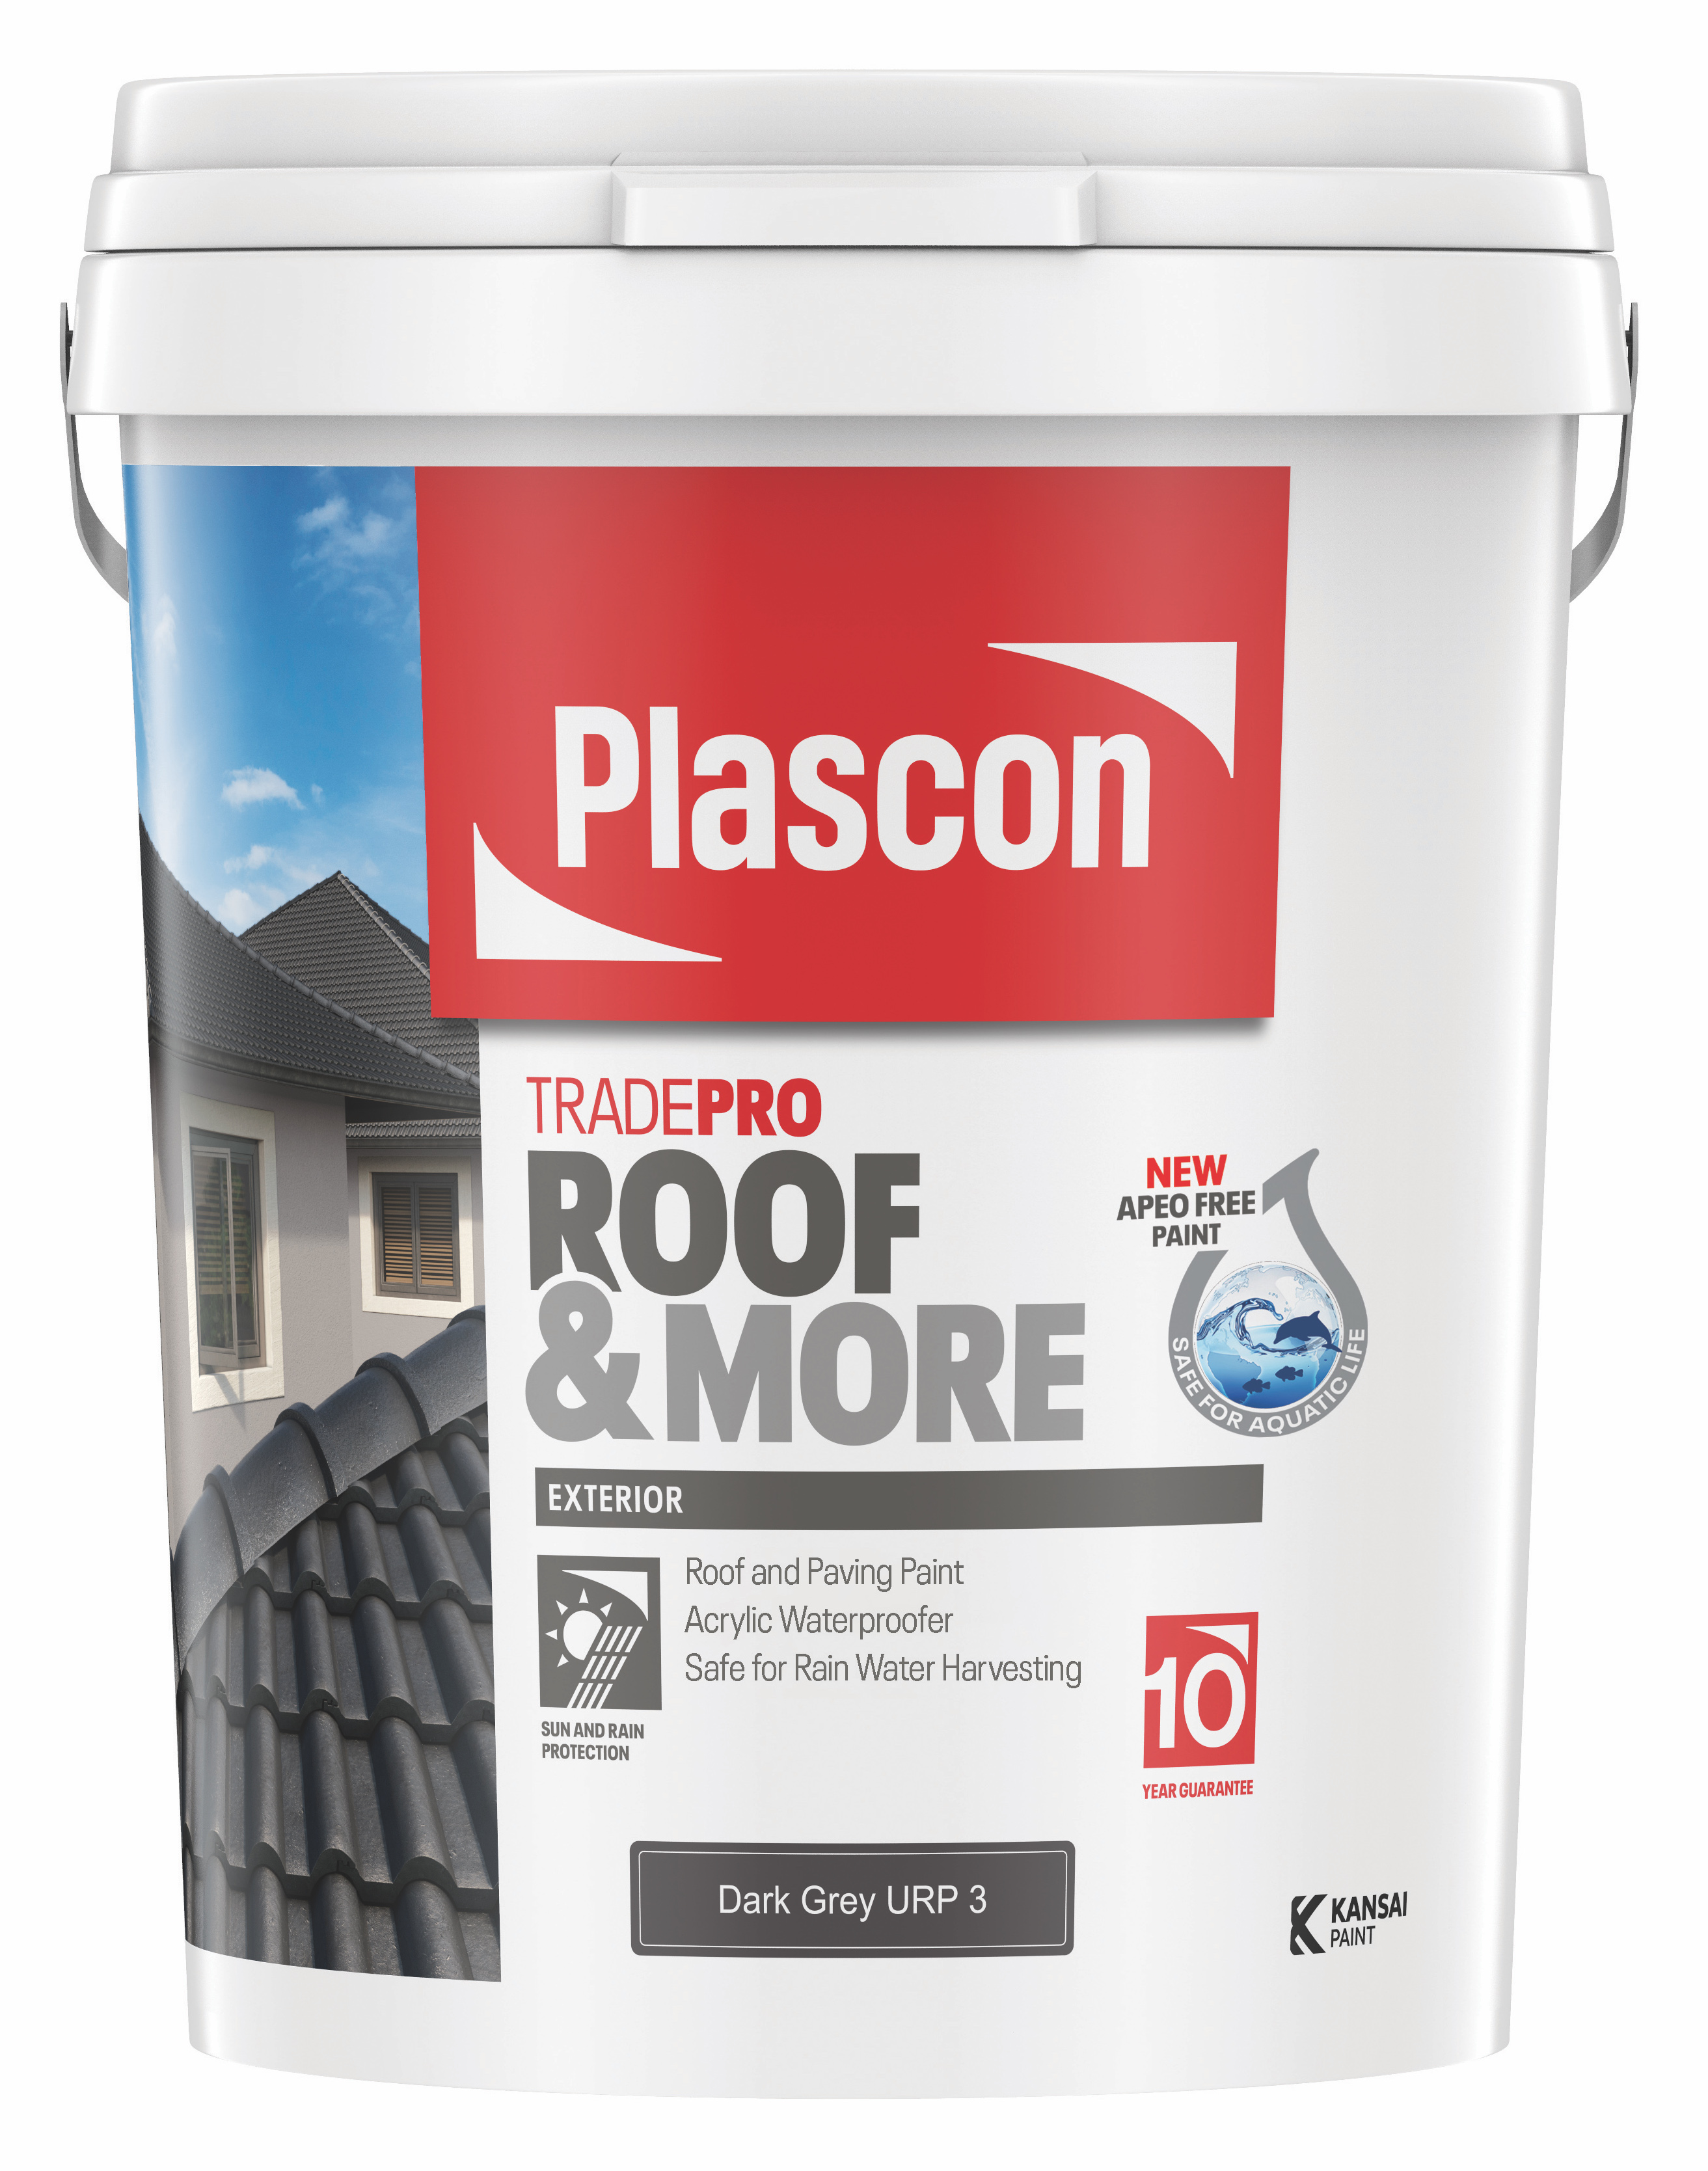 CROPPED 02840 Plascon Tradepro Roof 3D Packshot 20L PLASTIC BUCKET_NEW_flat copy